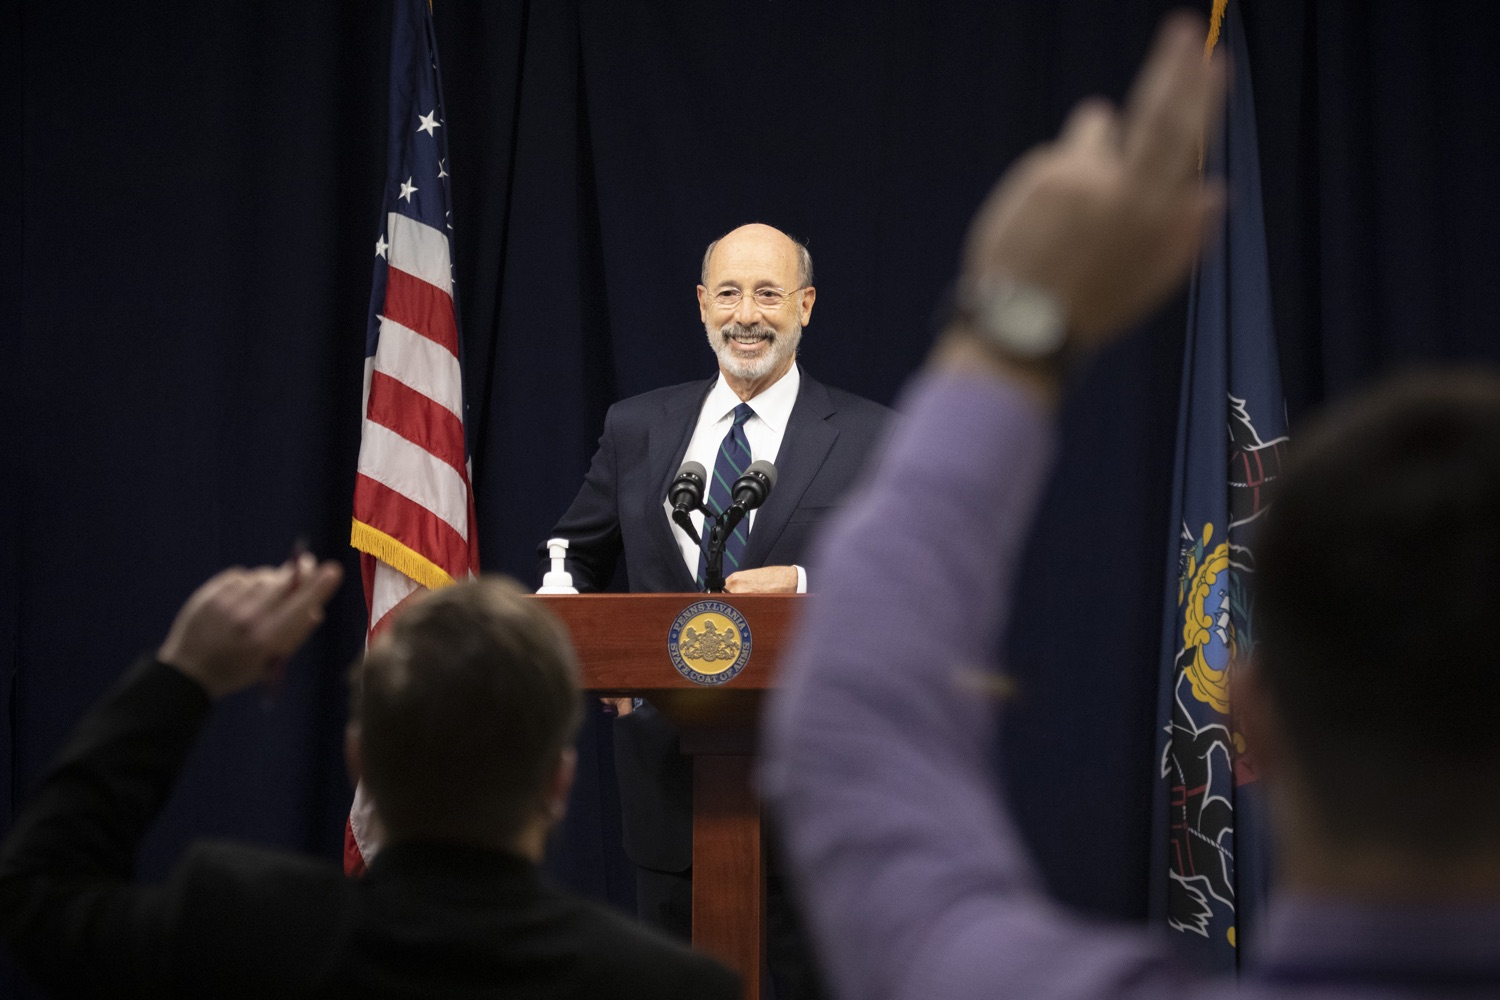 """<a href=""""https://filesource.wostreaming.net/commonwealthofpa/photo/18239_gov_recMarijuana_dz_022.jpg"""" target=""""_blank"""">⇣Download Photo<br></a>Pennsylvania Governor Tom Wolf speaking with the press. Governor Tom Wolf and Lt. Governor John Fetterman today called on the legislature to take up the legalization of adult-use cannabis to help with the states economic recovery amid COVID-19. Legalization will also create more outlets for important restorative justice programs in the commonwealth.  Harrisburg, PA  Sept. 3, 2020"""